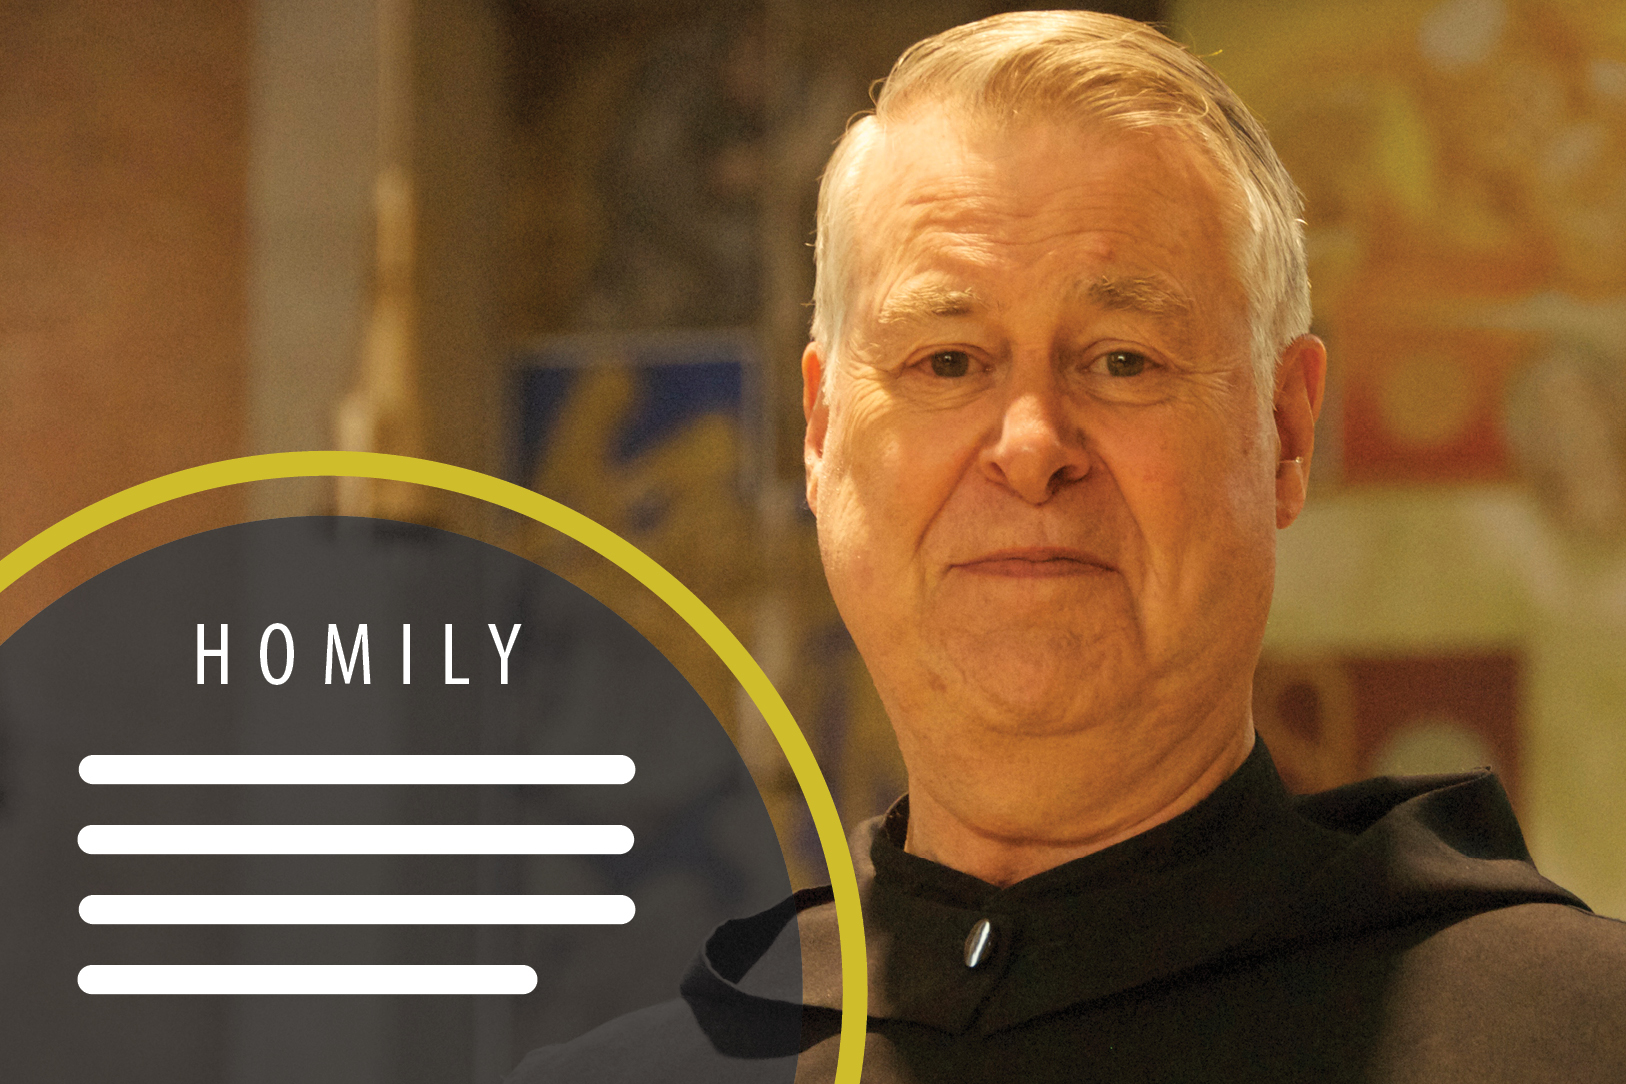 Fr. Matthew Habiger has been a monk of St. Benedict's Abbey since 1963. He is currently very active in pro-life ministry, traveling internationally to speak about Natural Family Planning.